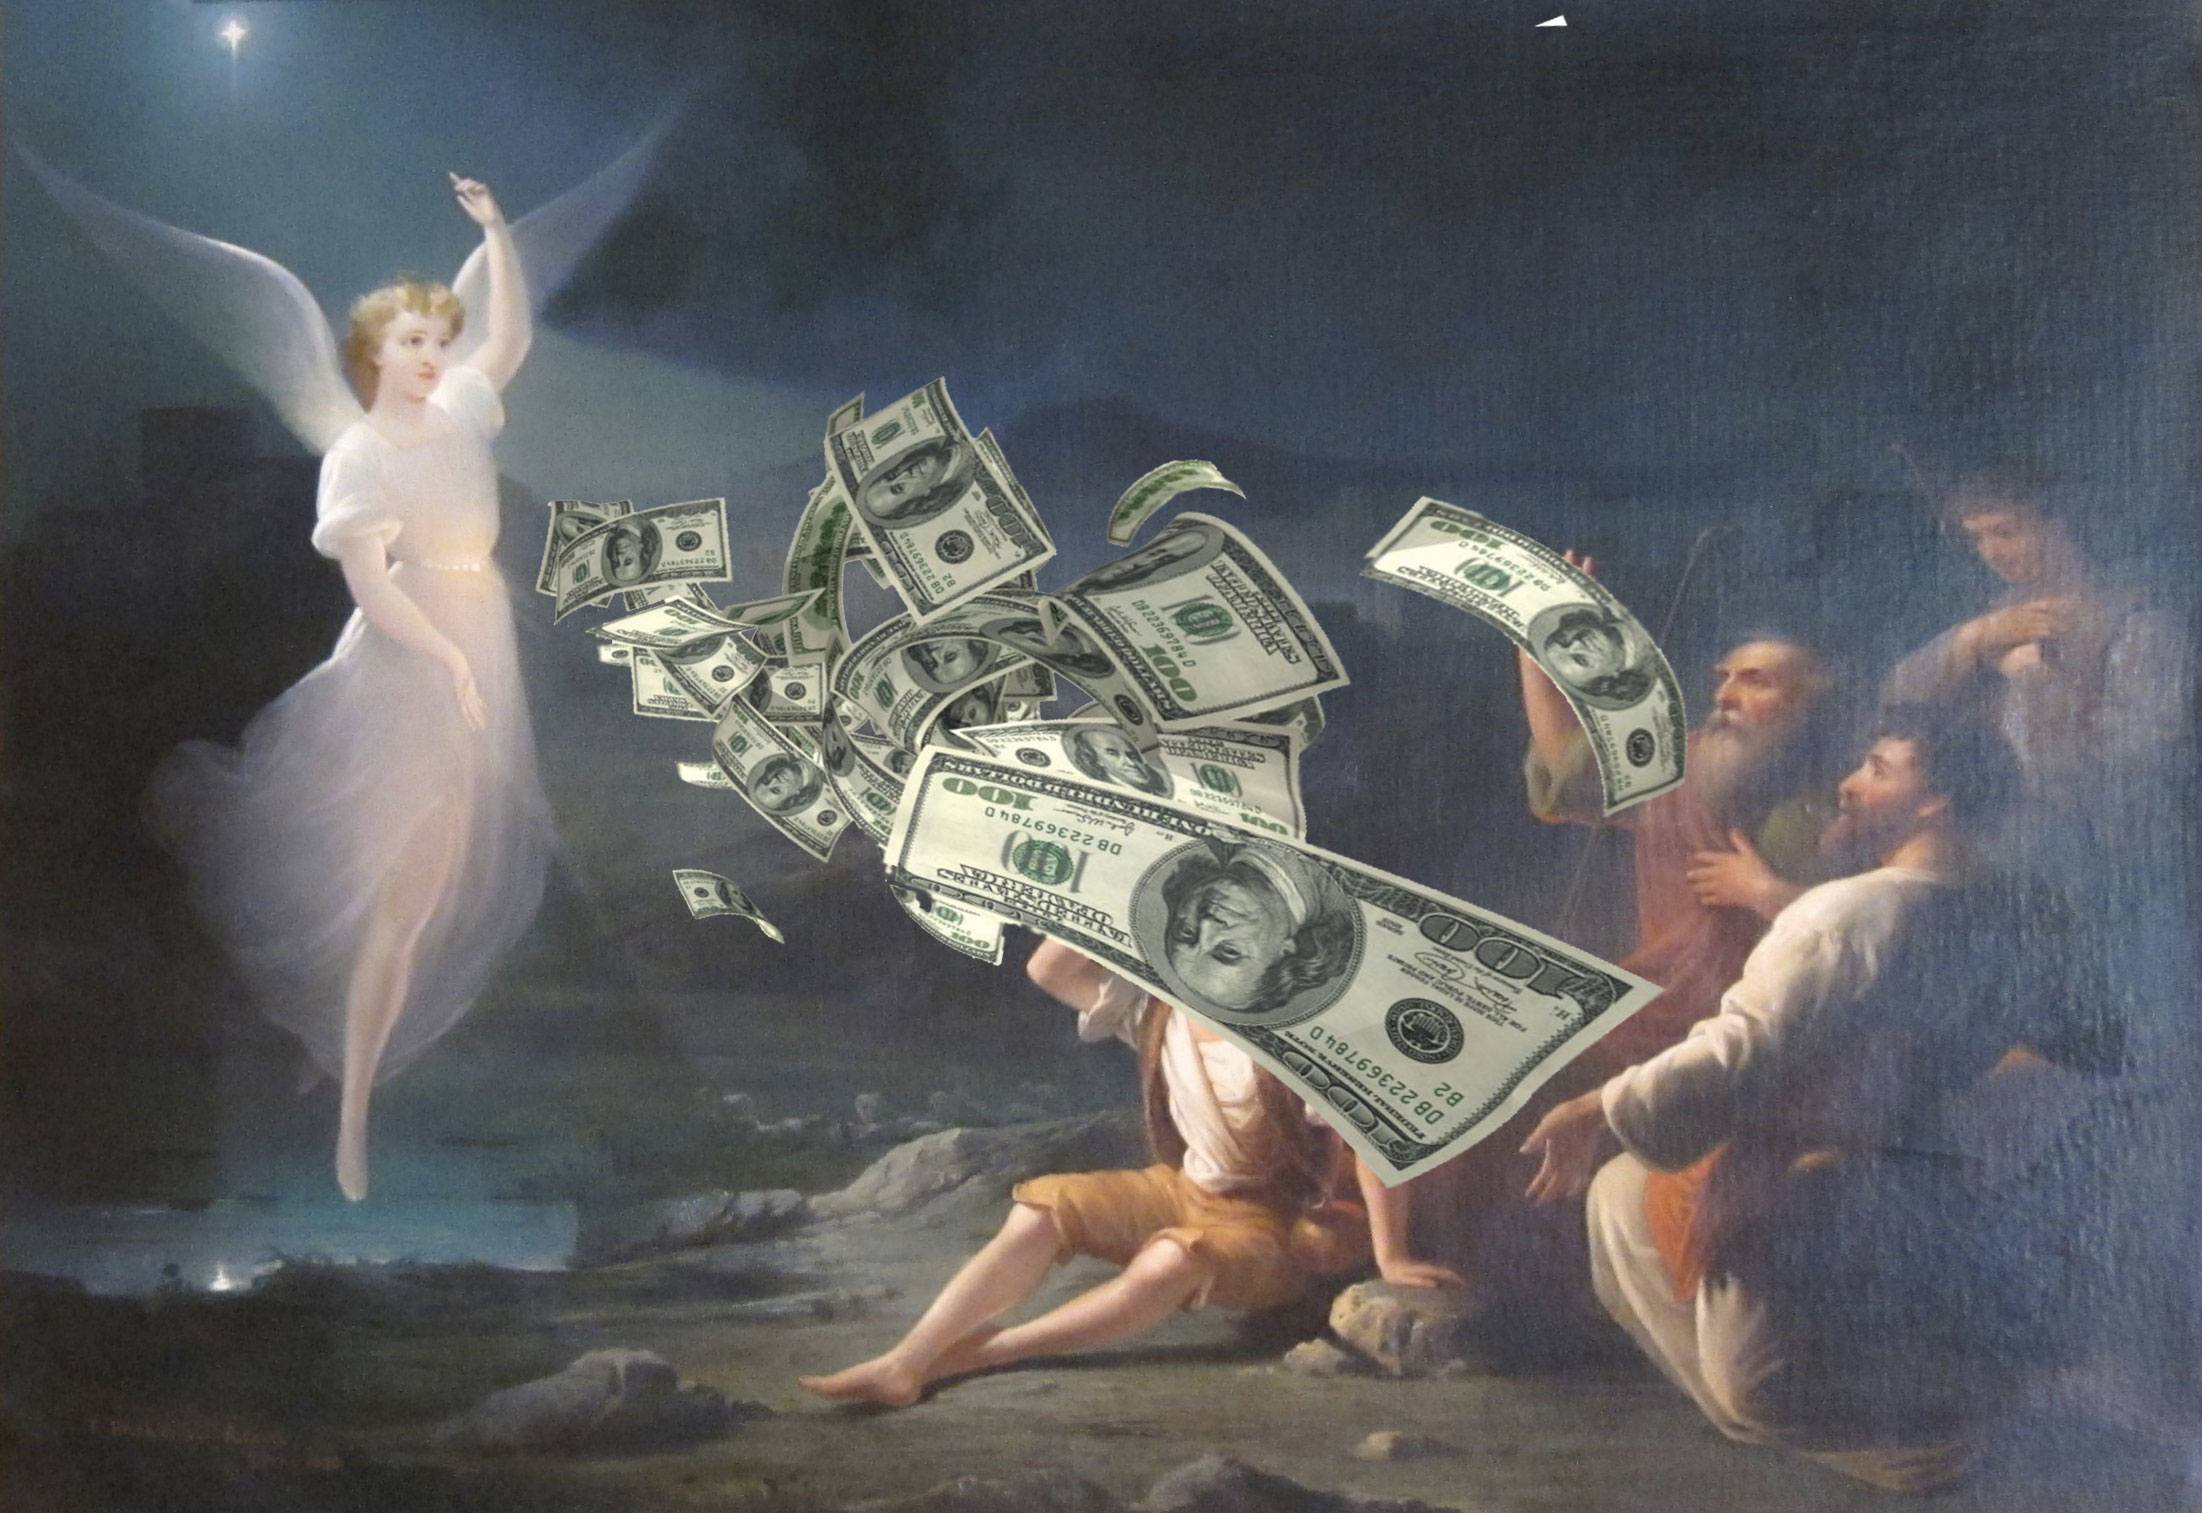 how to get angel investor funding